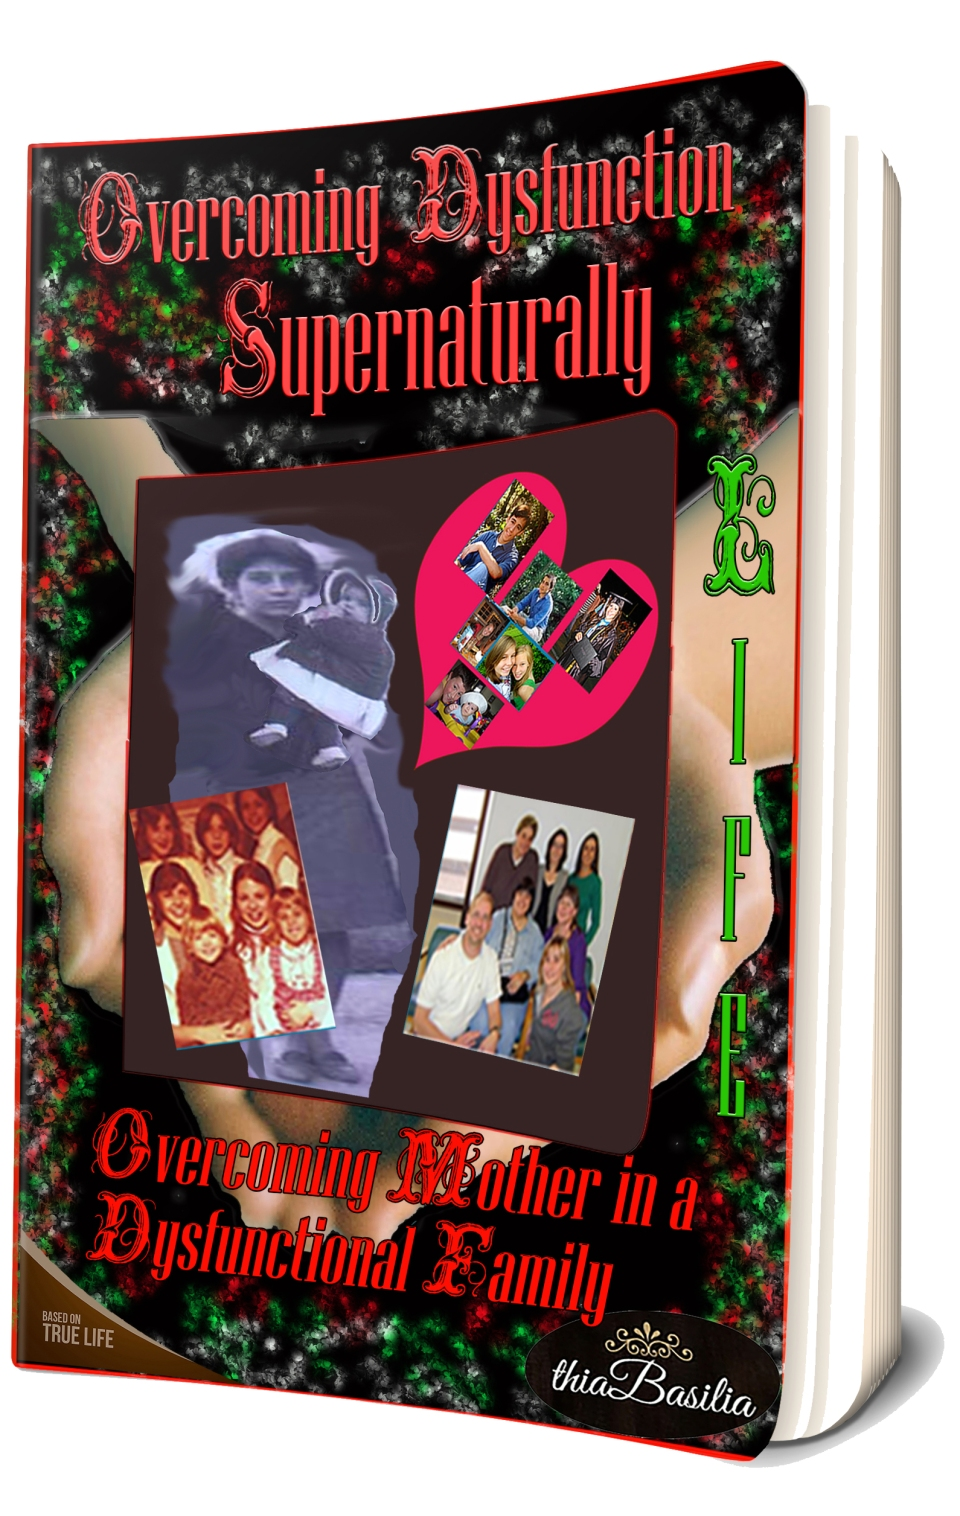 001 A BOOK_COVER_SIMPLE_NONEDITABLE_hahaha